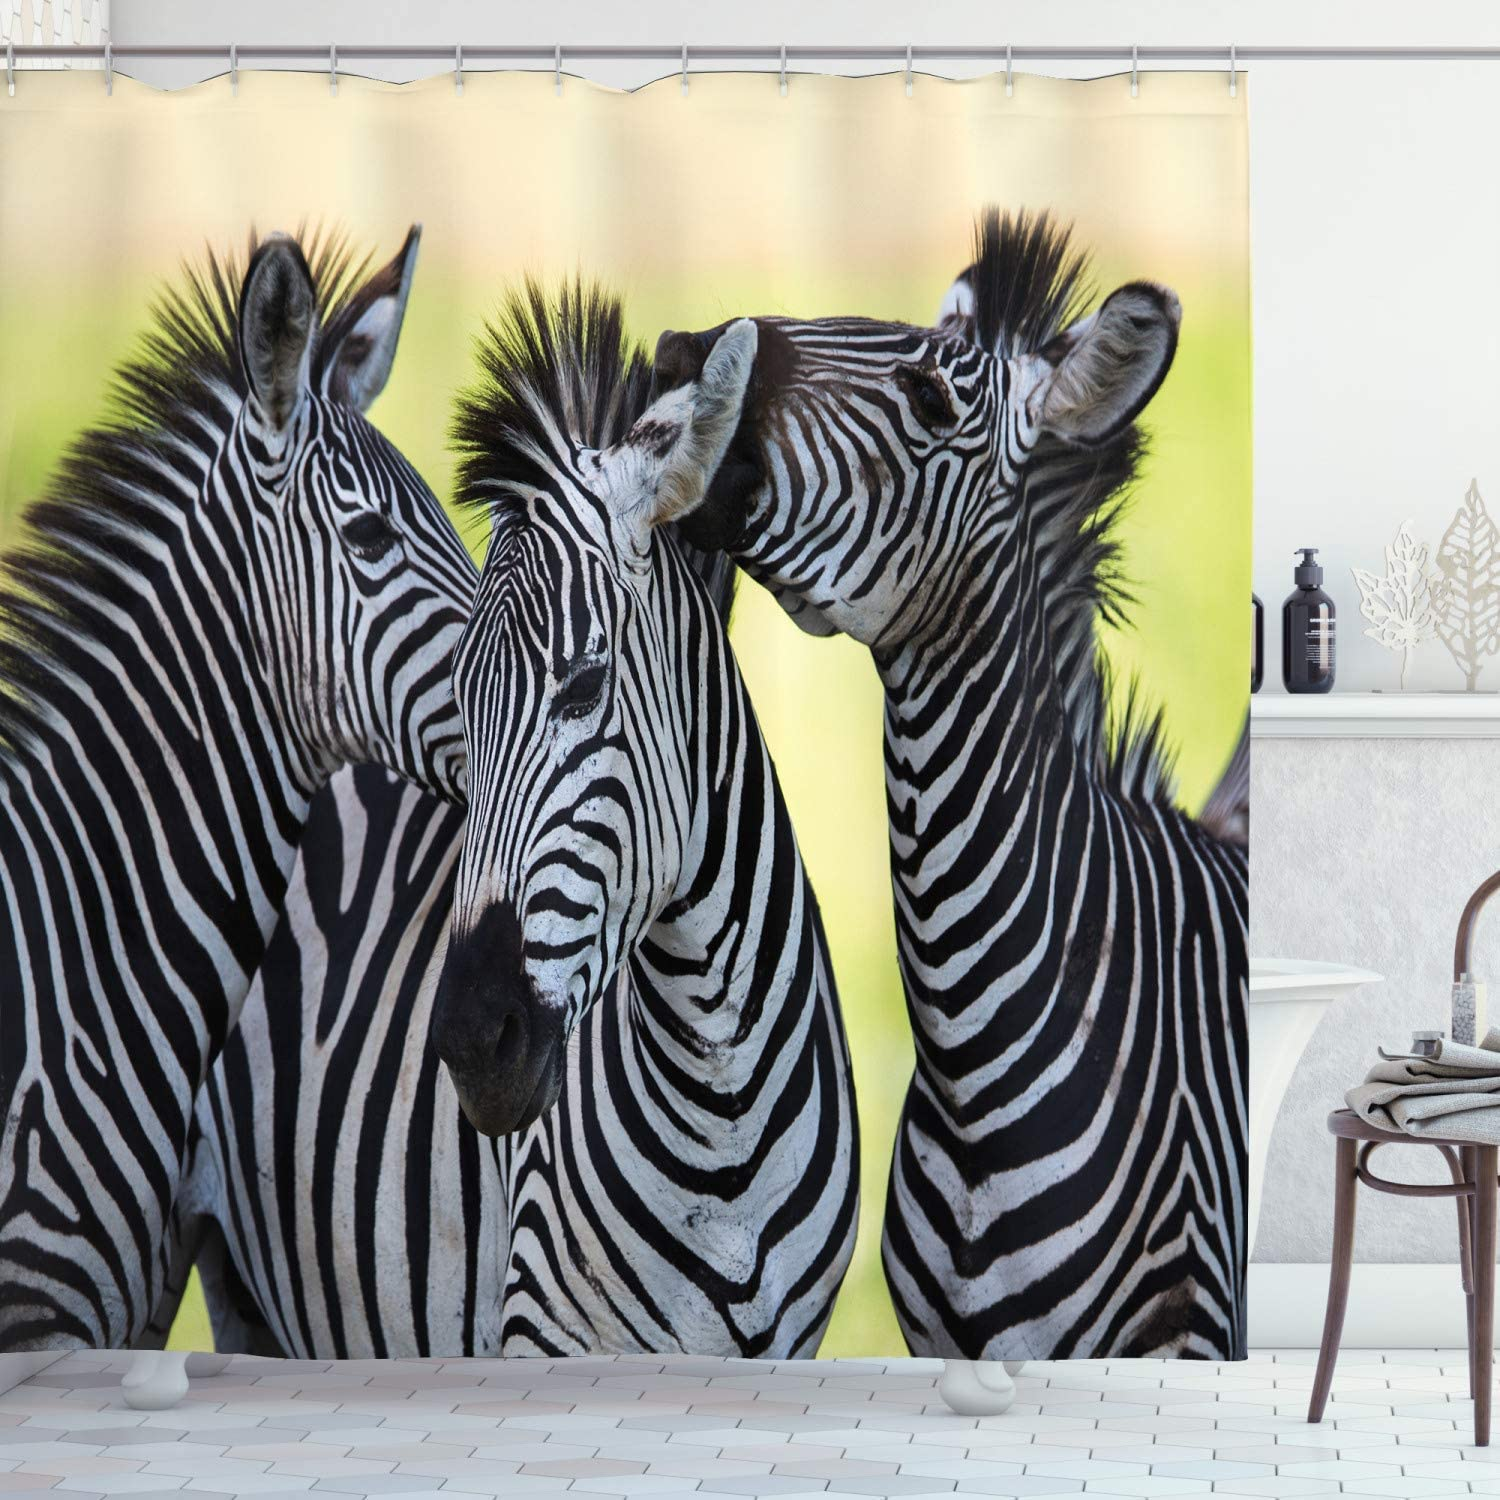 ZHHLD Zebra Safari Wild Nature Picture Print Bathroom Shower Curtain Waterproof Non-Toxic Privacy Opaque Bathroom Decoration Easy to Clean 71x71inch Including 12 Plastic Hooks